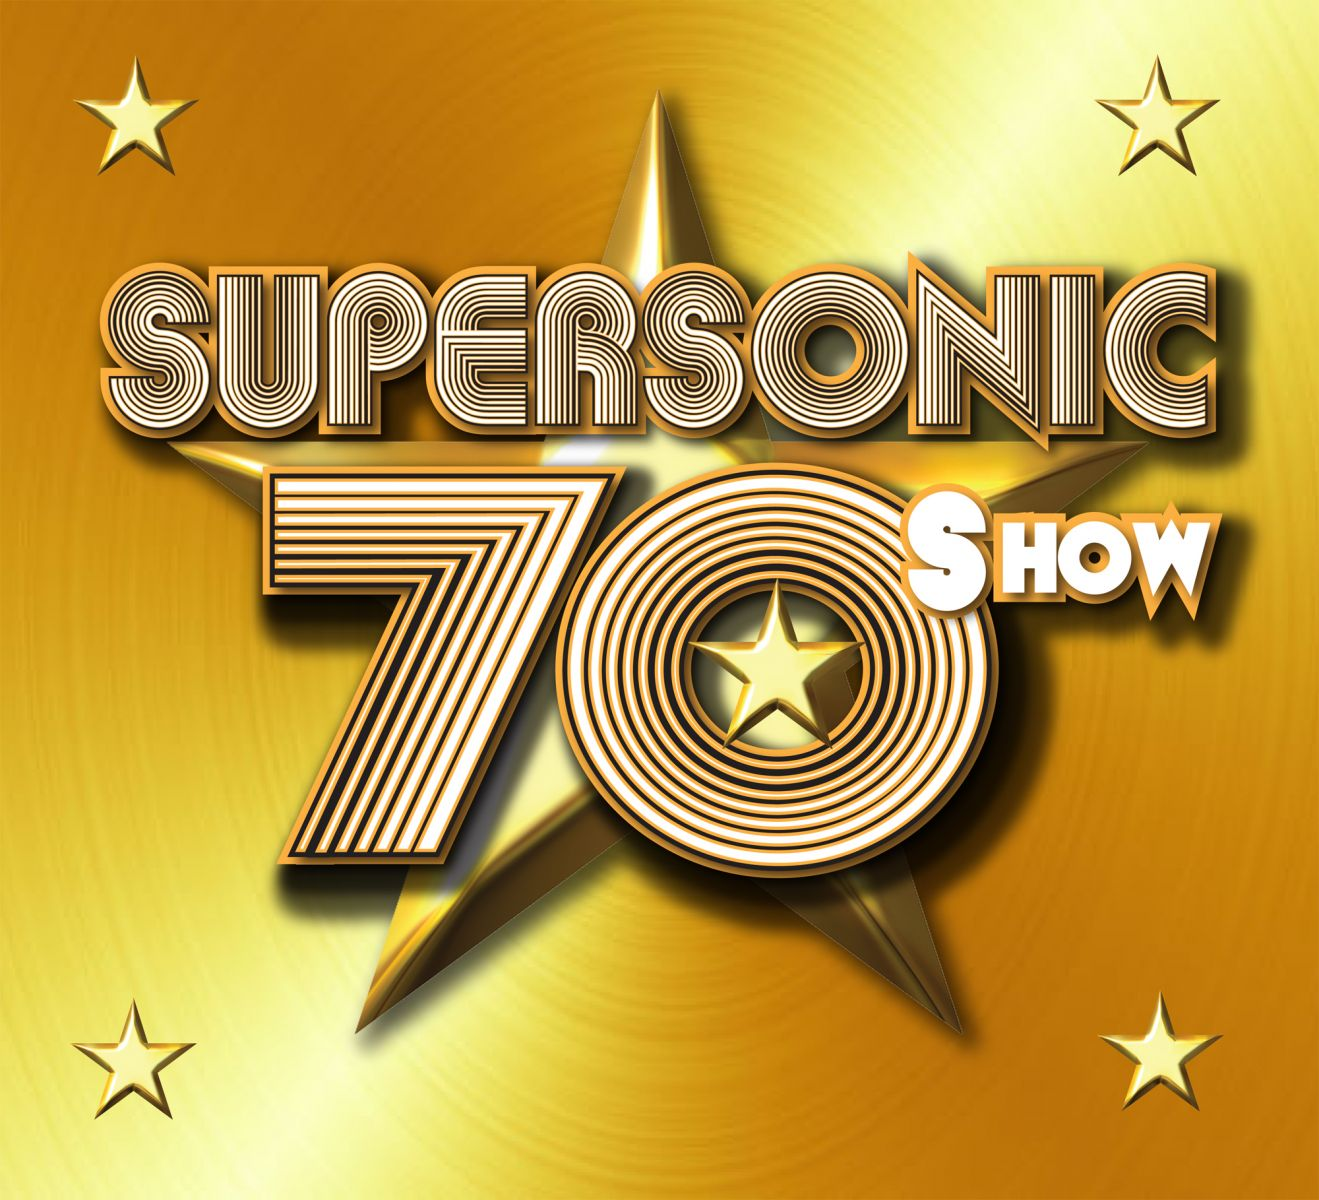 The Supersonic 70's Tenth Anniversary Tour